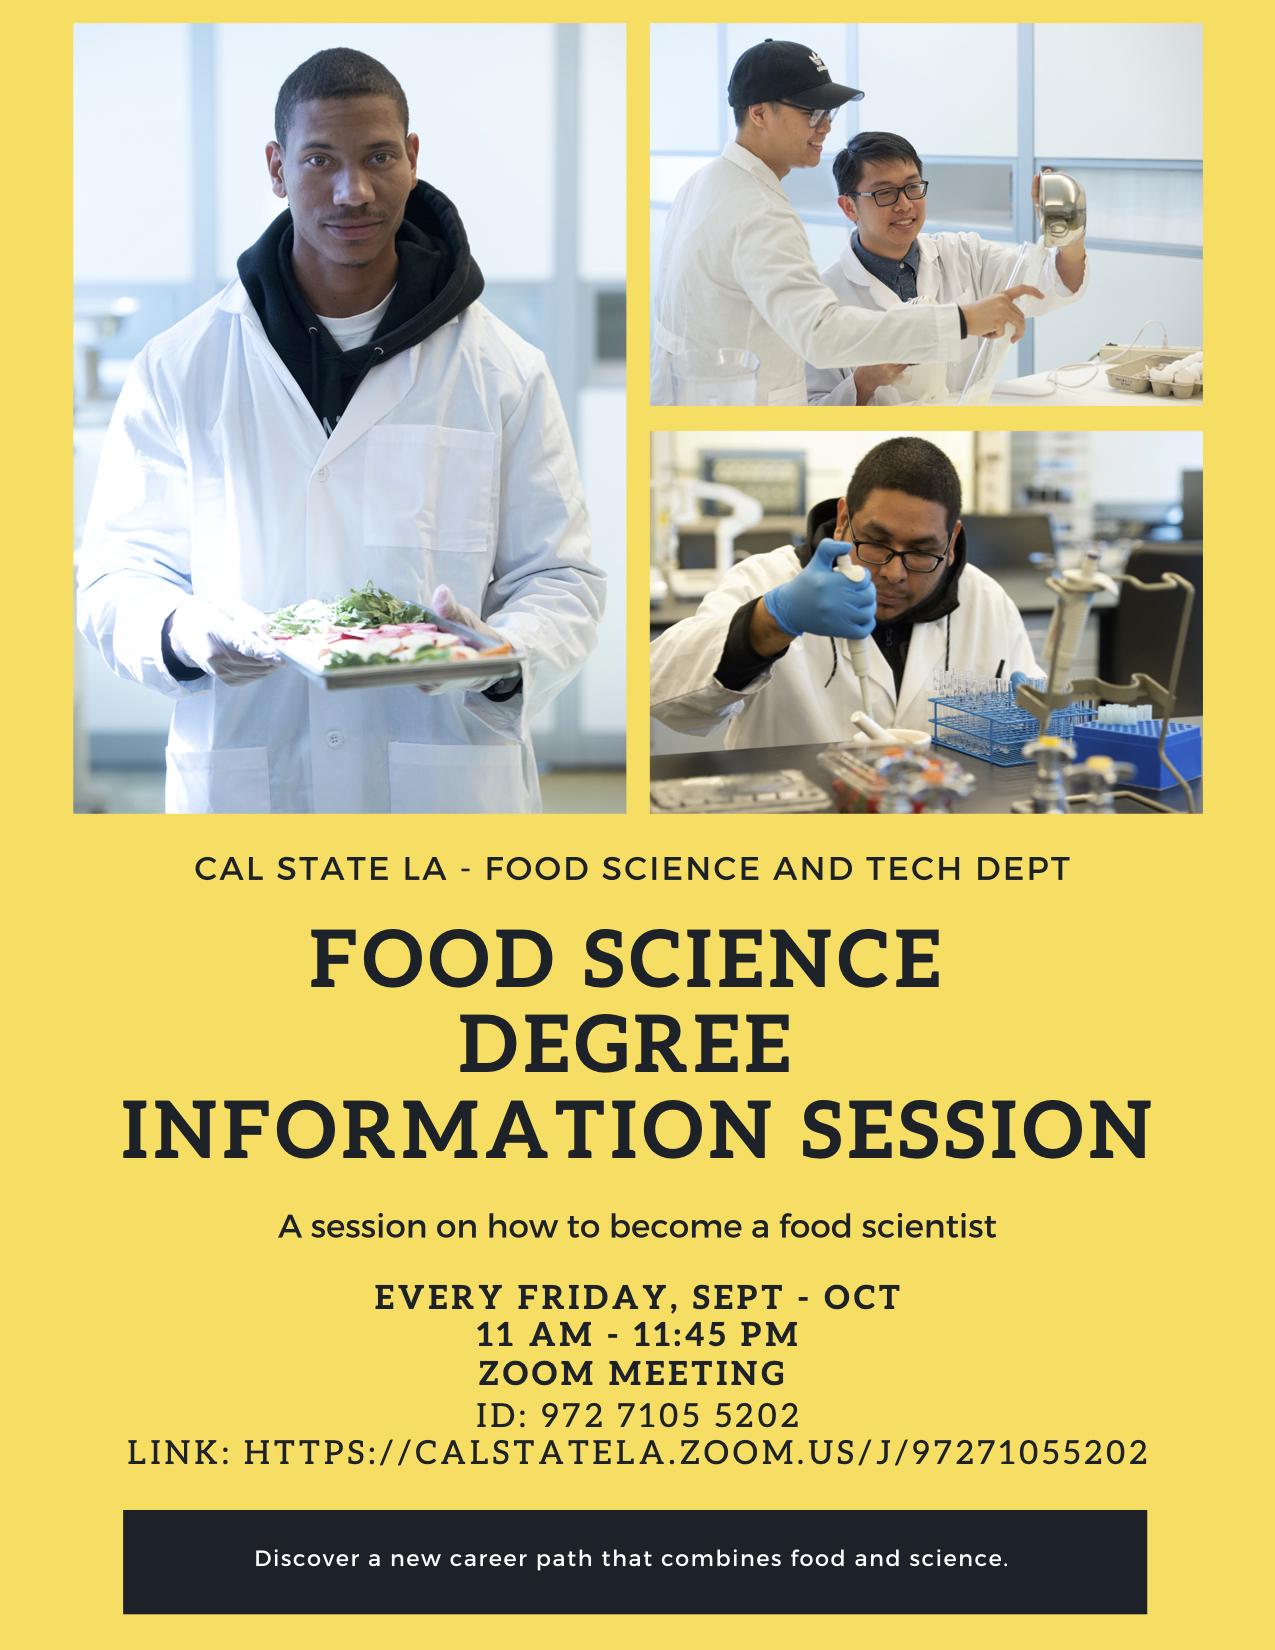 CSULA Food Science Information Session